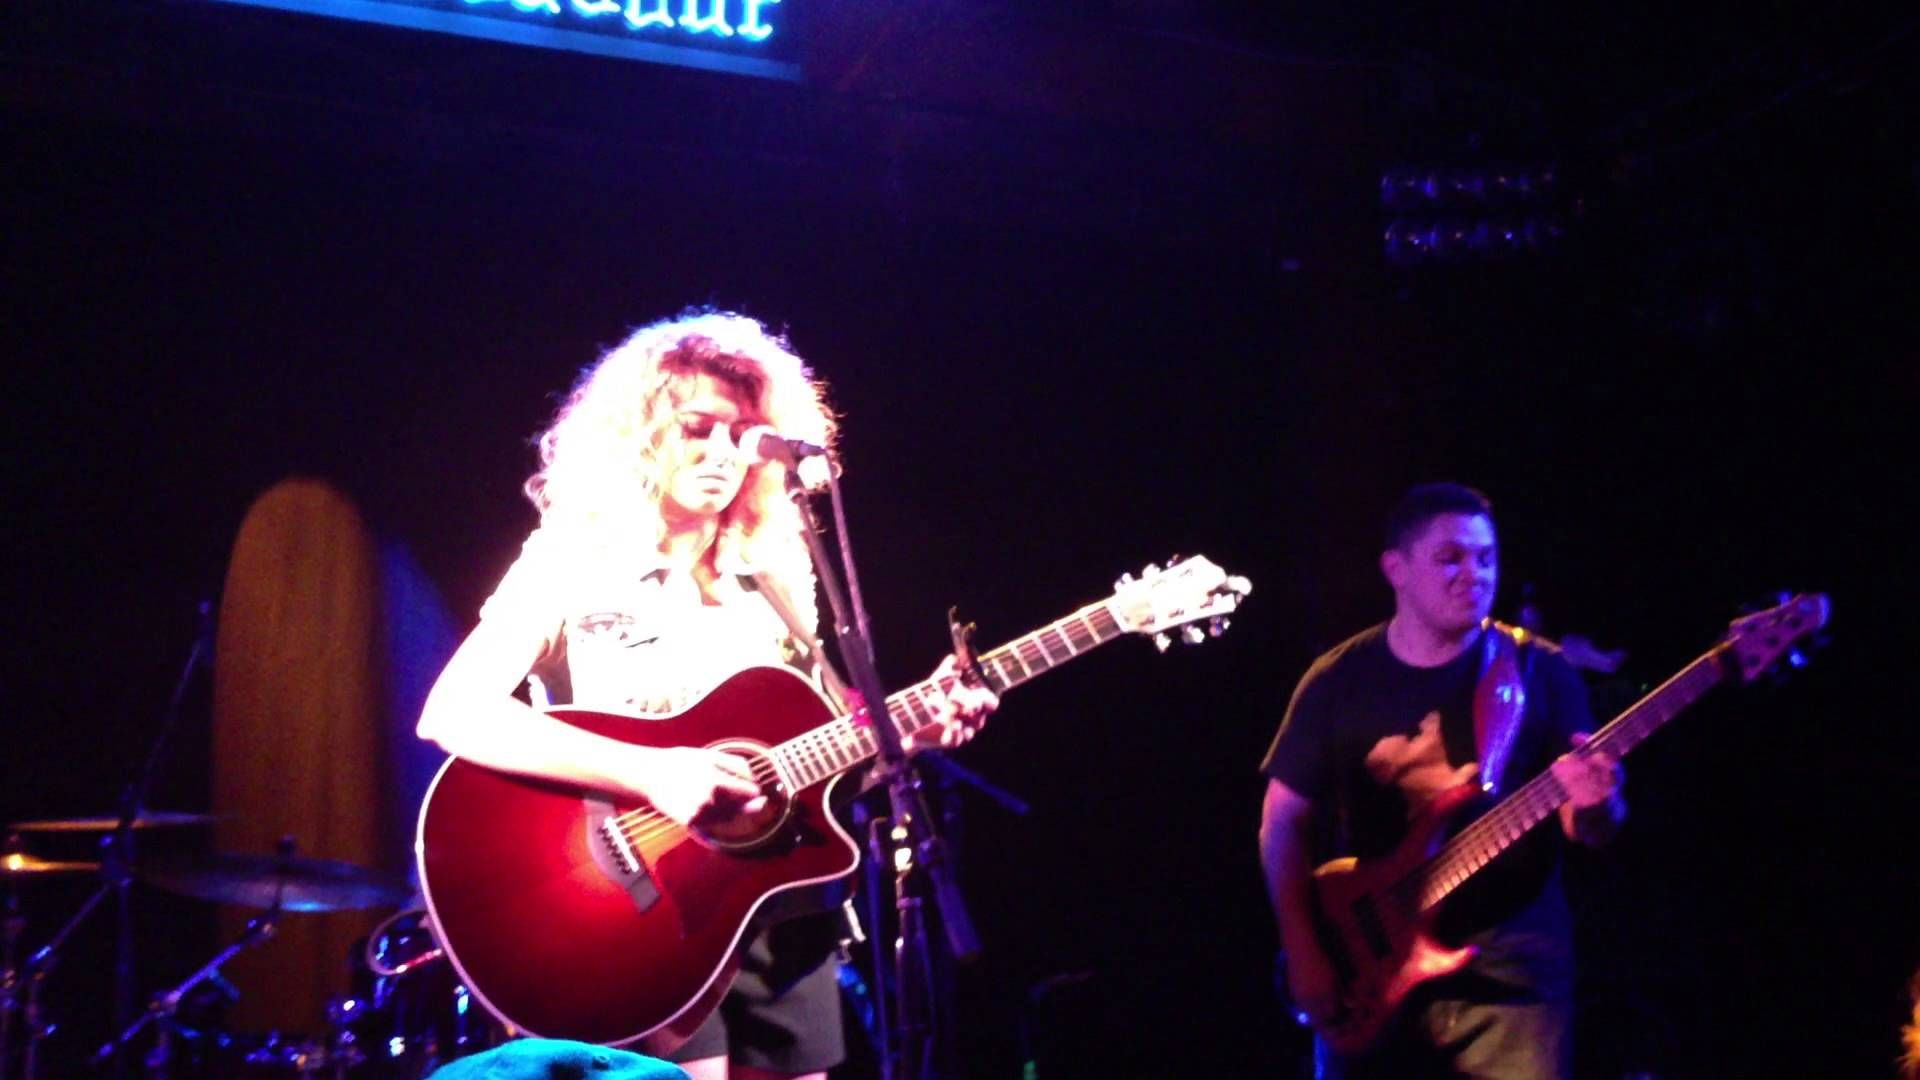 All In My Head Tori Kelly Live At The Troubadour Tori Kelly